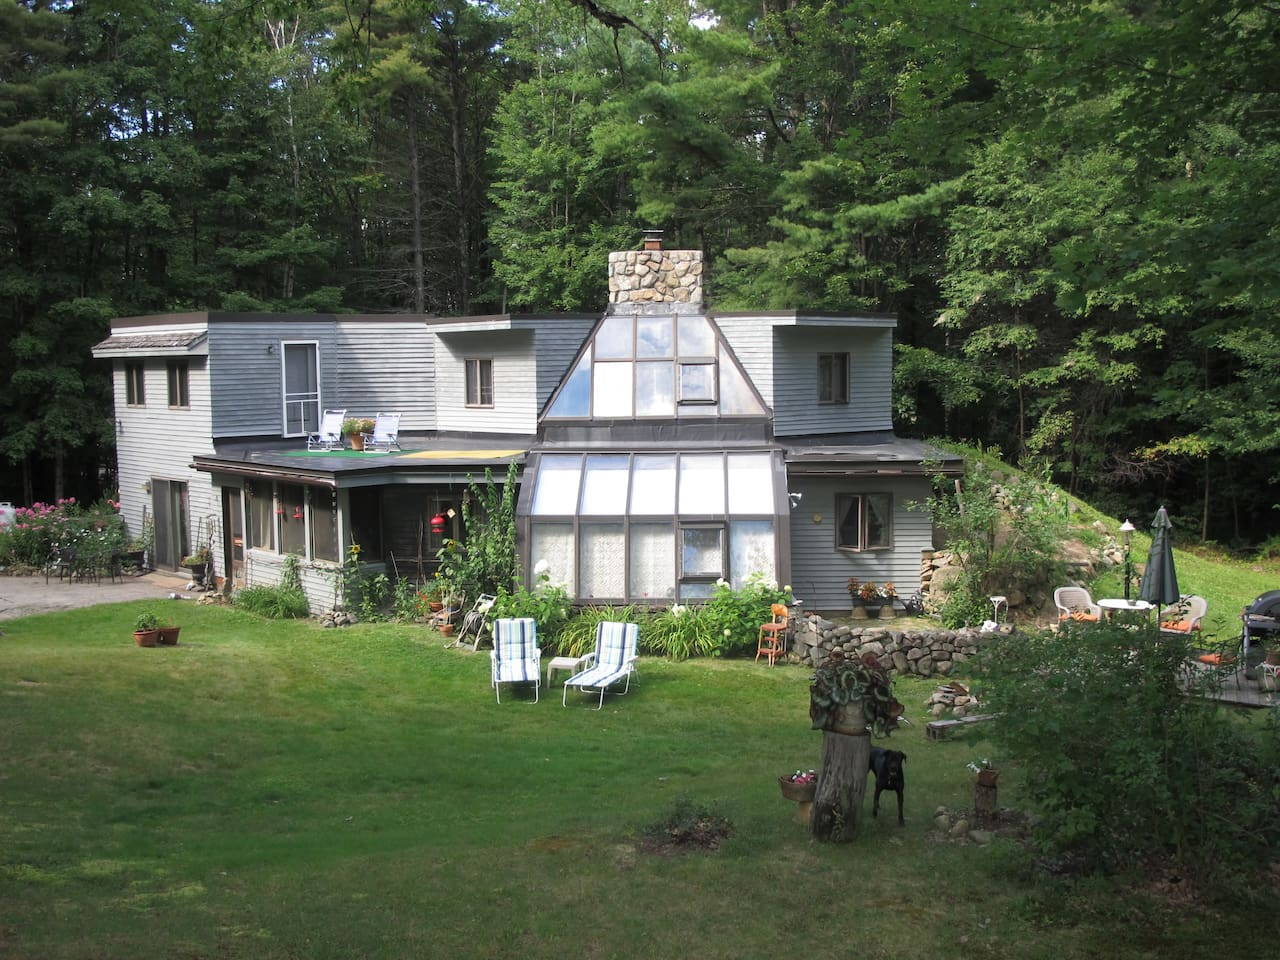 Come and enjoy the experience of our beautiful passive solar home, nestled in the White Mountains. A rural location within driving distance to shopping, restaurants and all outdoor passions.